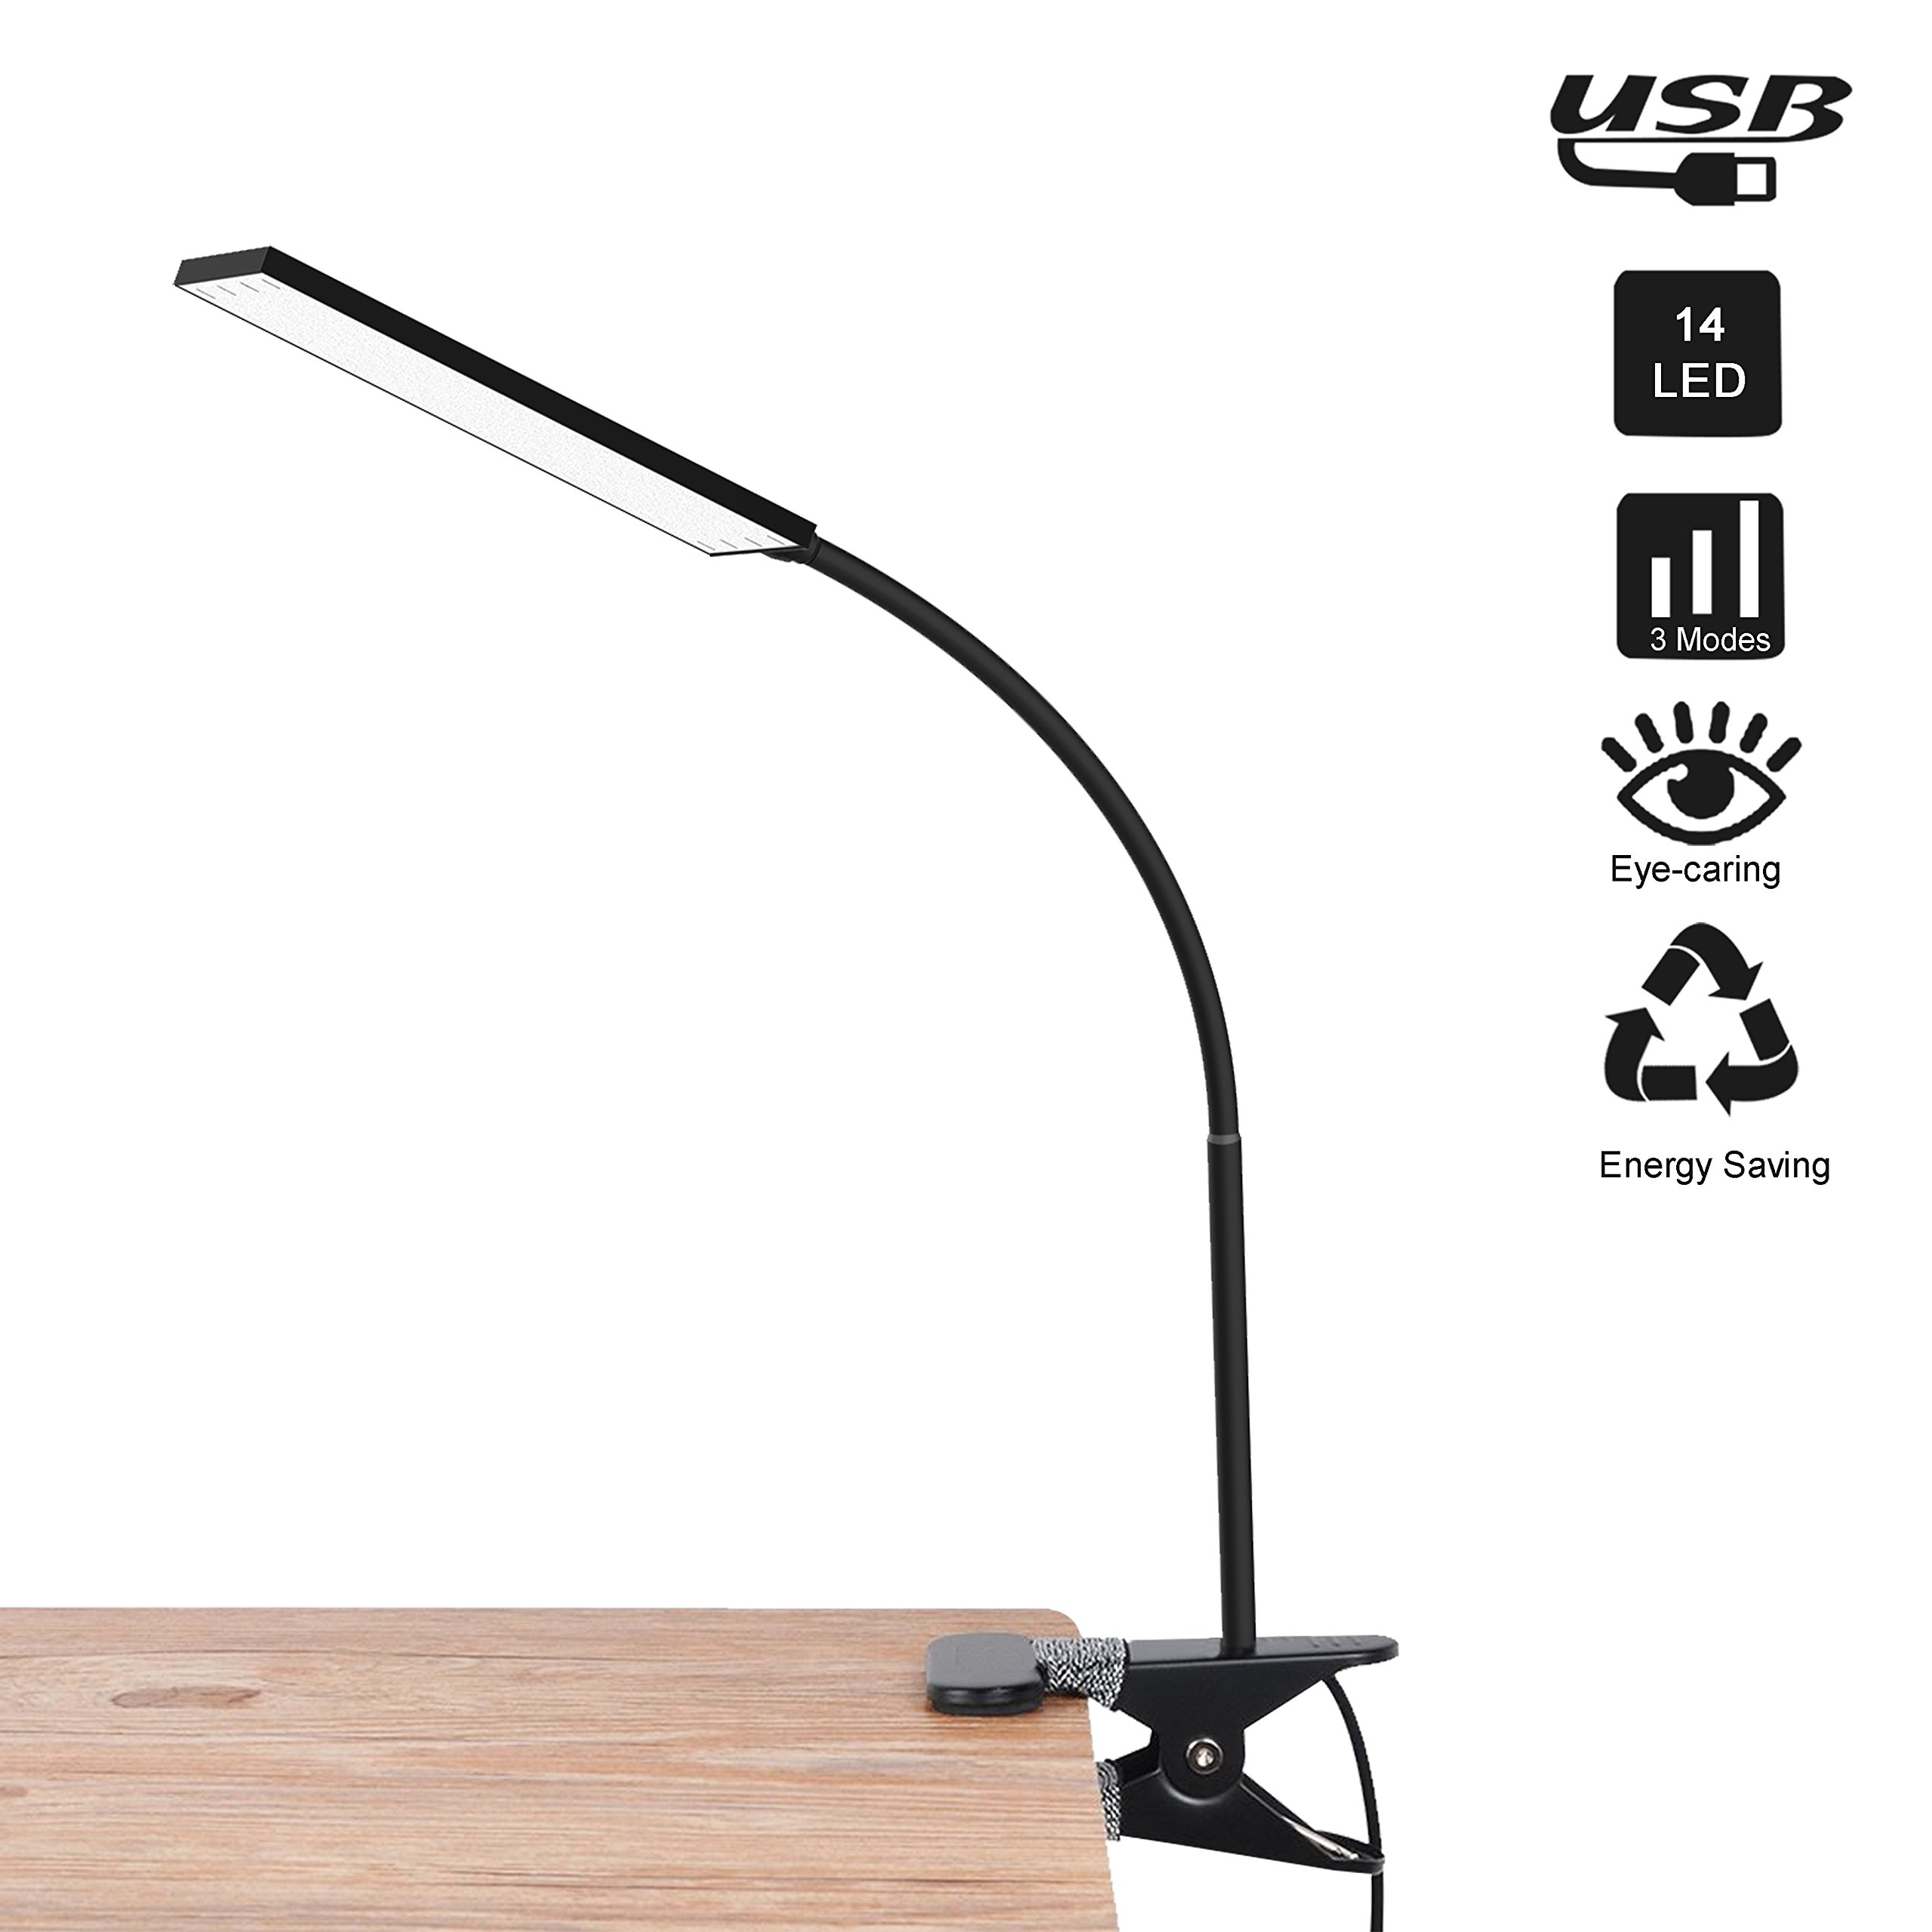 LED Desk Lamp, RAOYI Eye-Care Dimmable Flexible Gooseneck USB Table Lamp, 3 Color Temperatures, 14 Brightness Levels Clip Reading Lamp for Studying, Working, Black